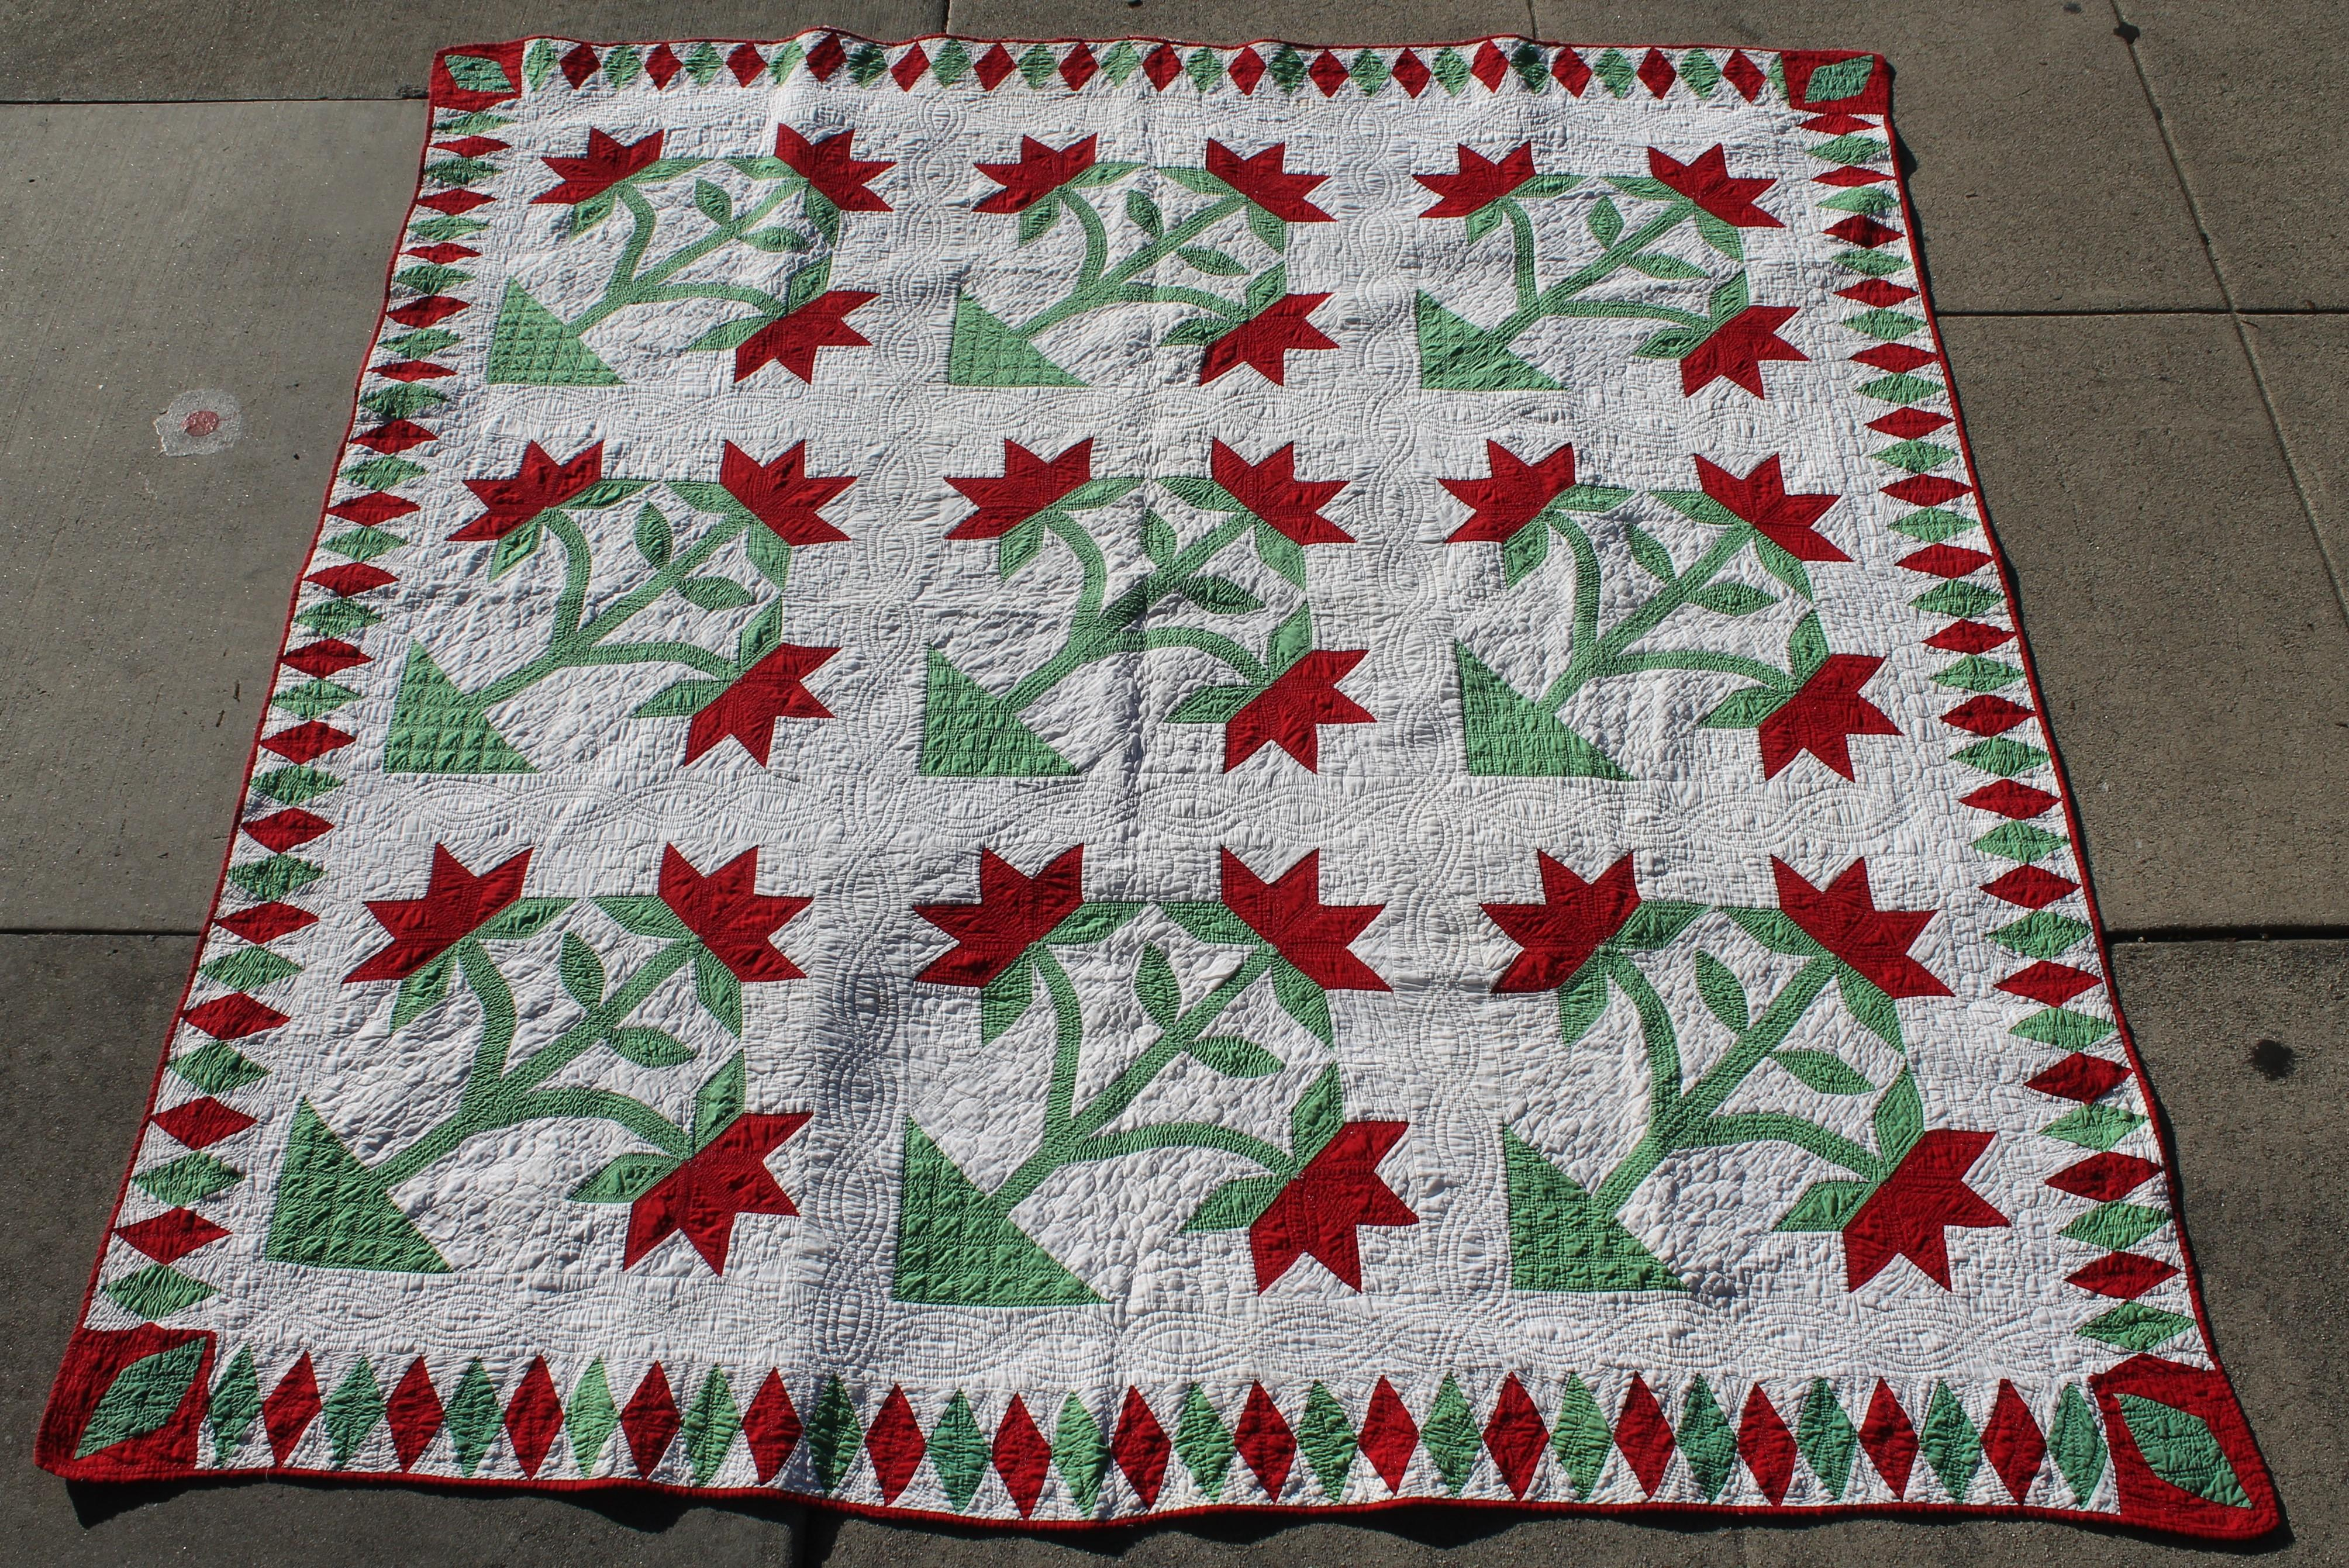 Antique applique quilt th century carolina lilly for sale at